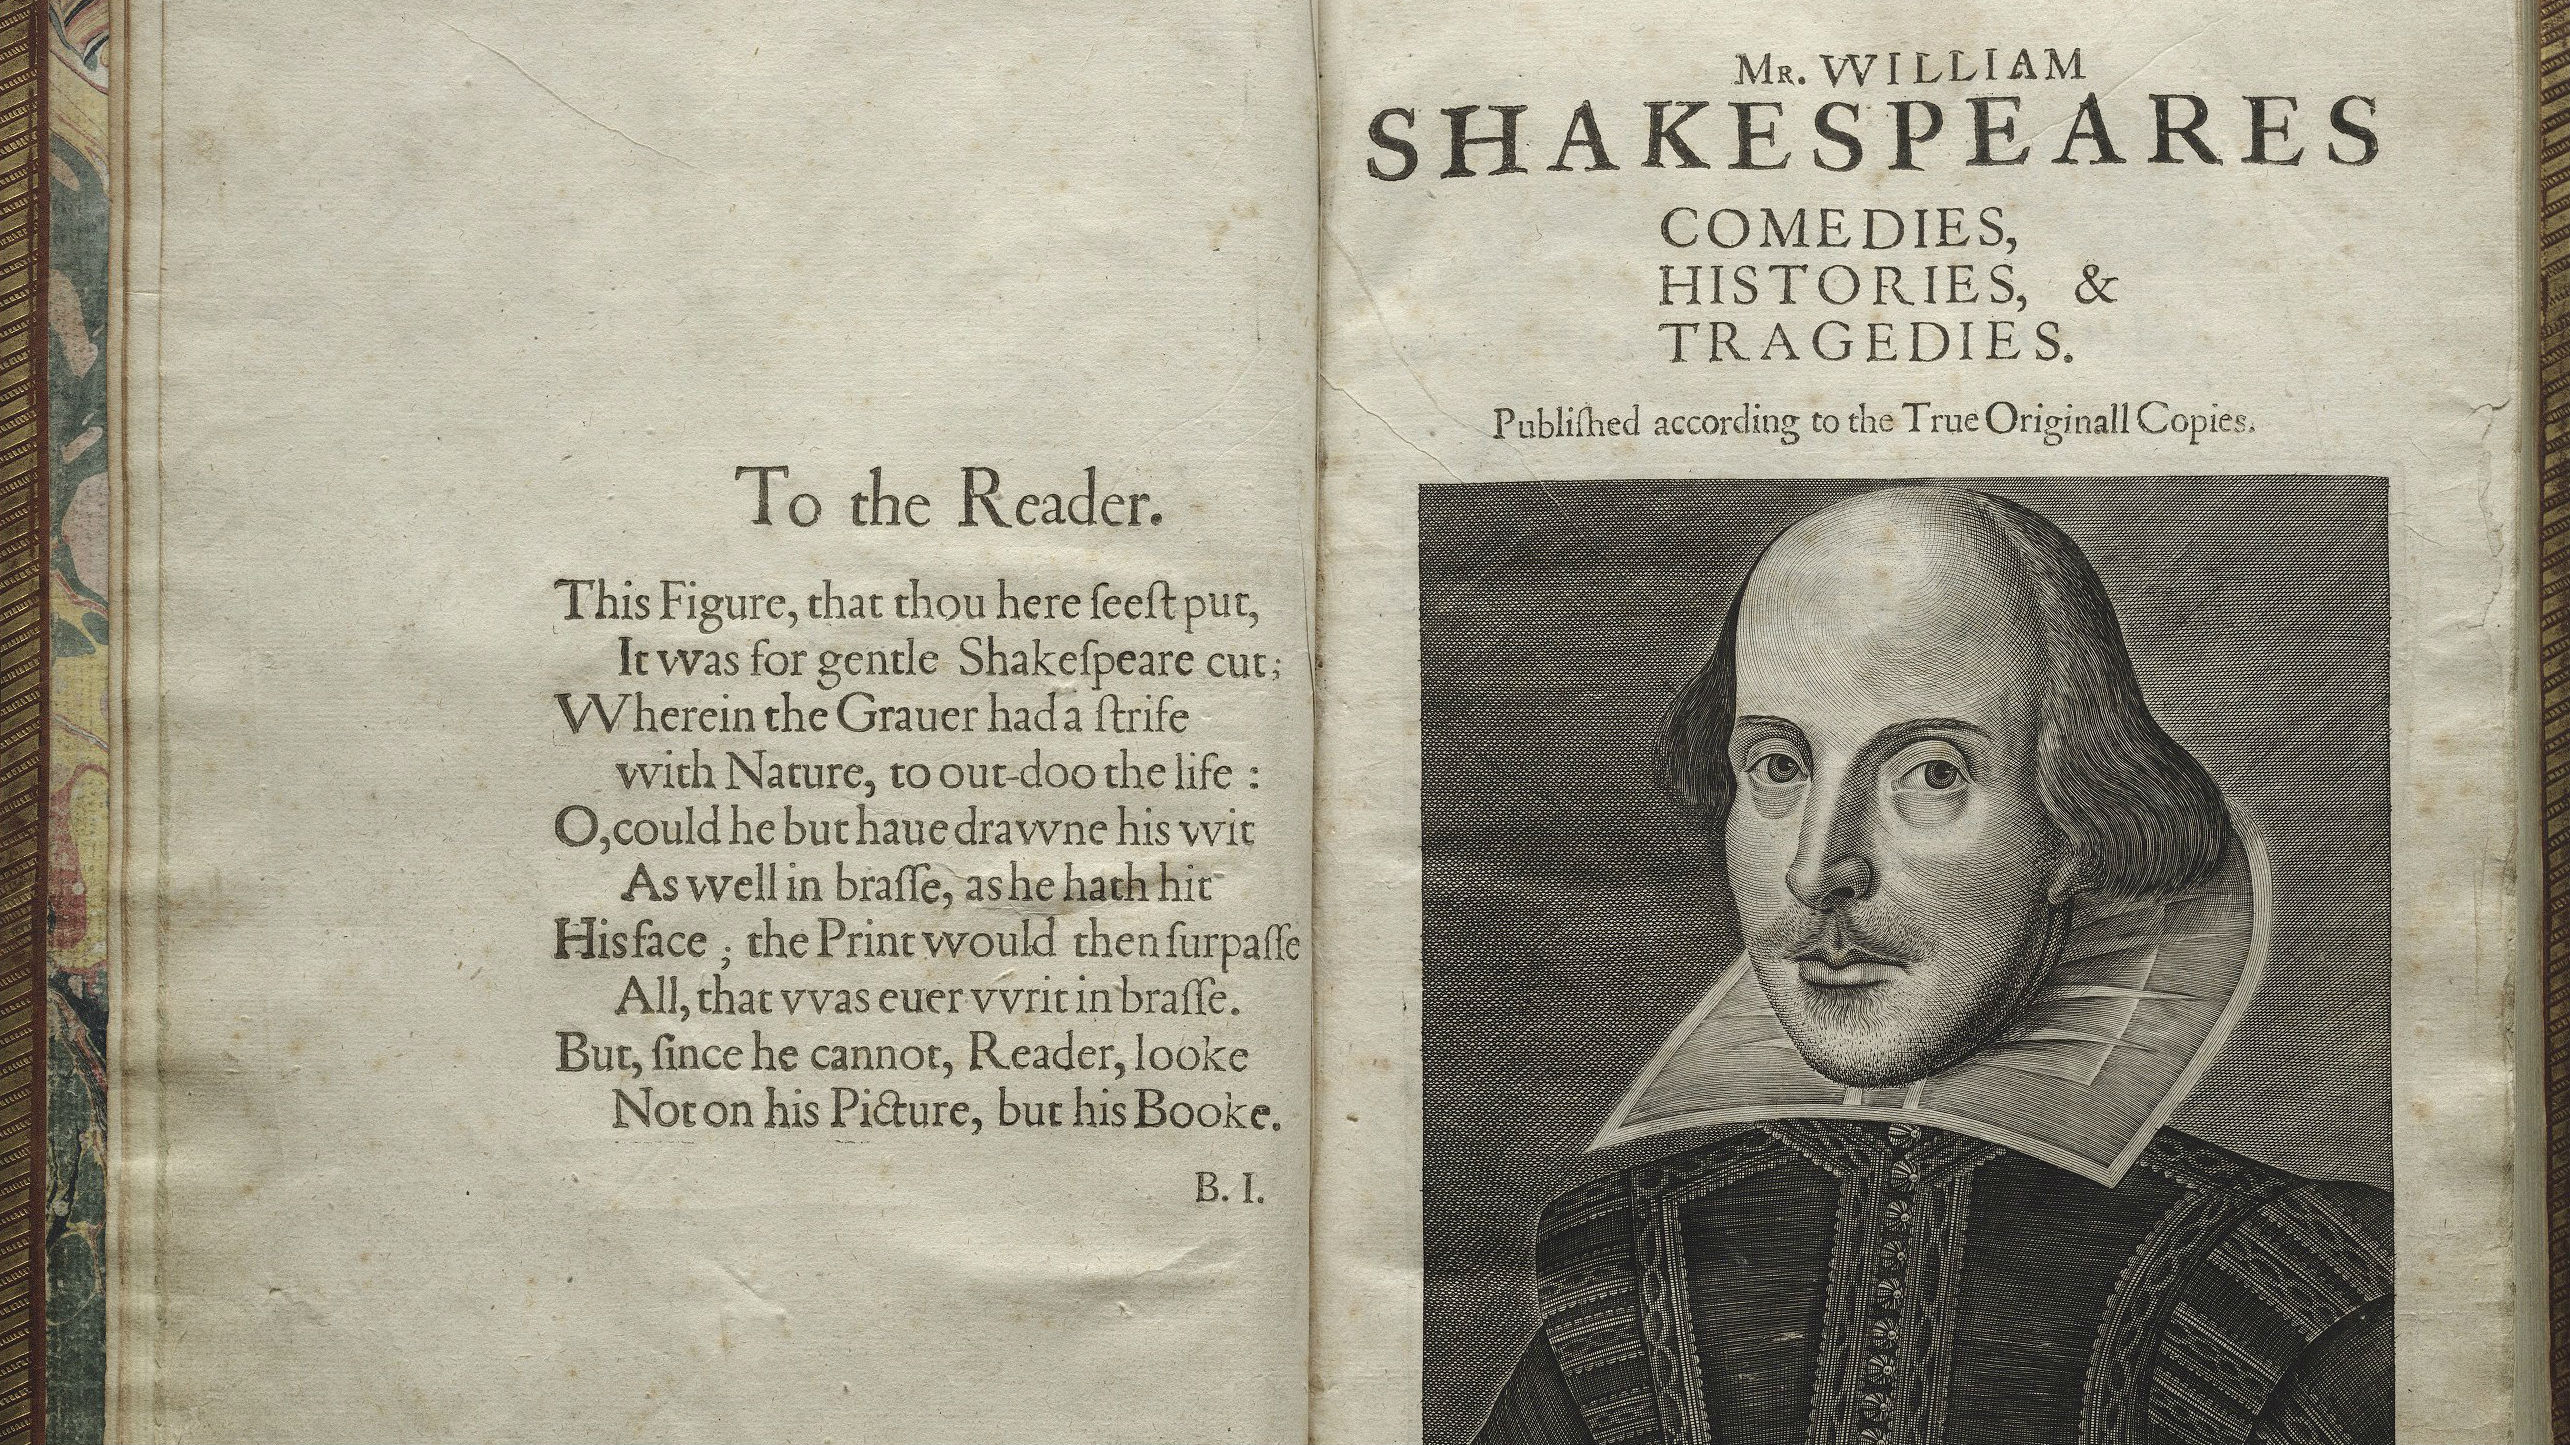 Photo: First Folio feature